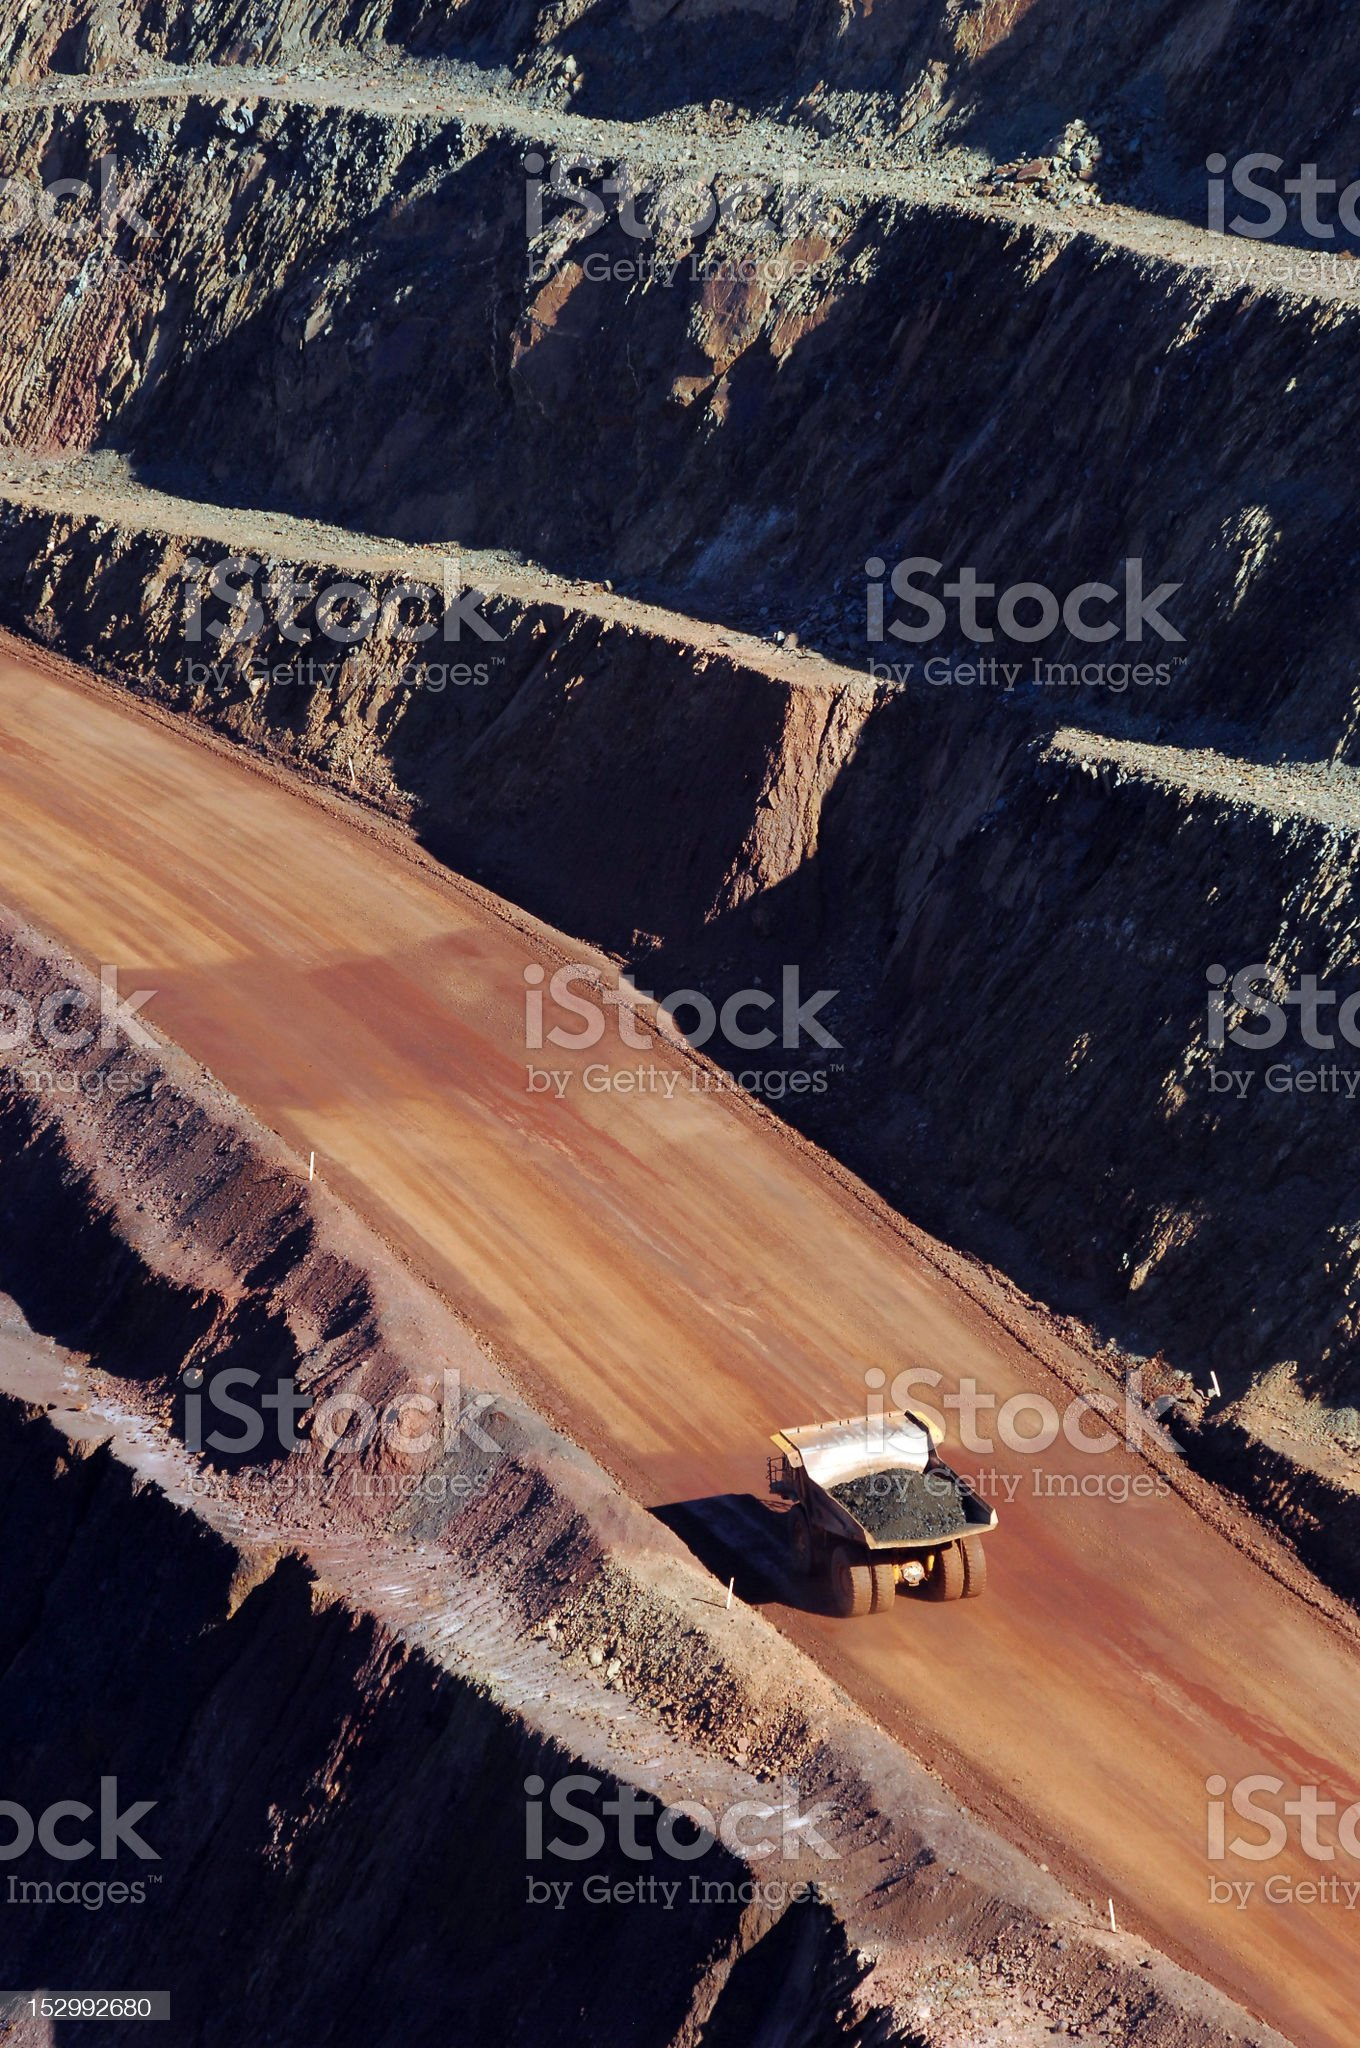 Haul truck carrying ore in a minesite royalty-free stock photo